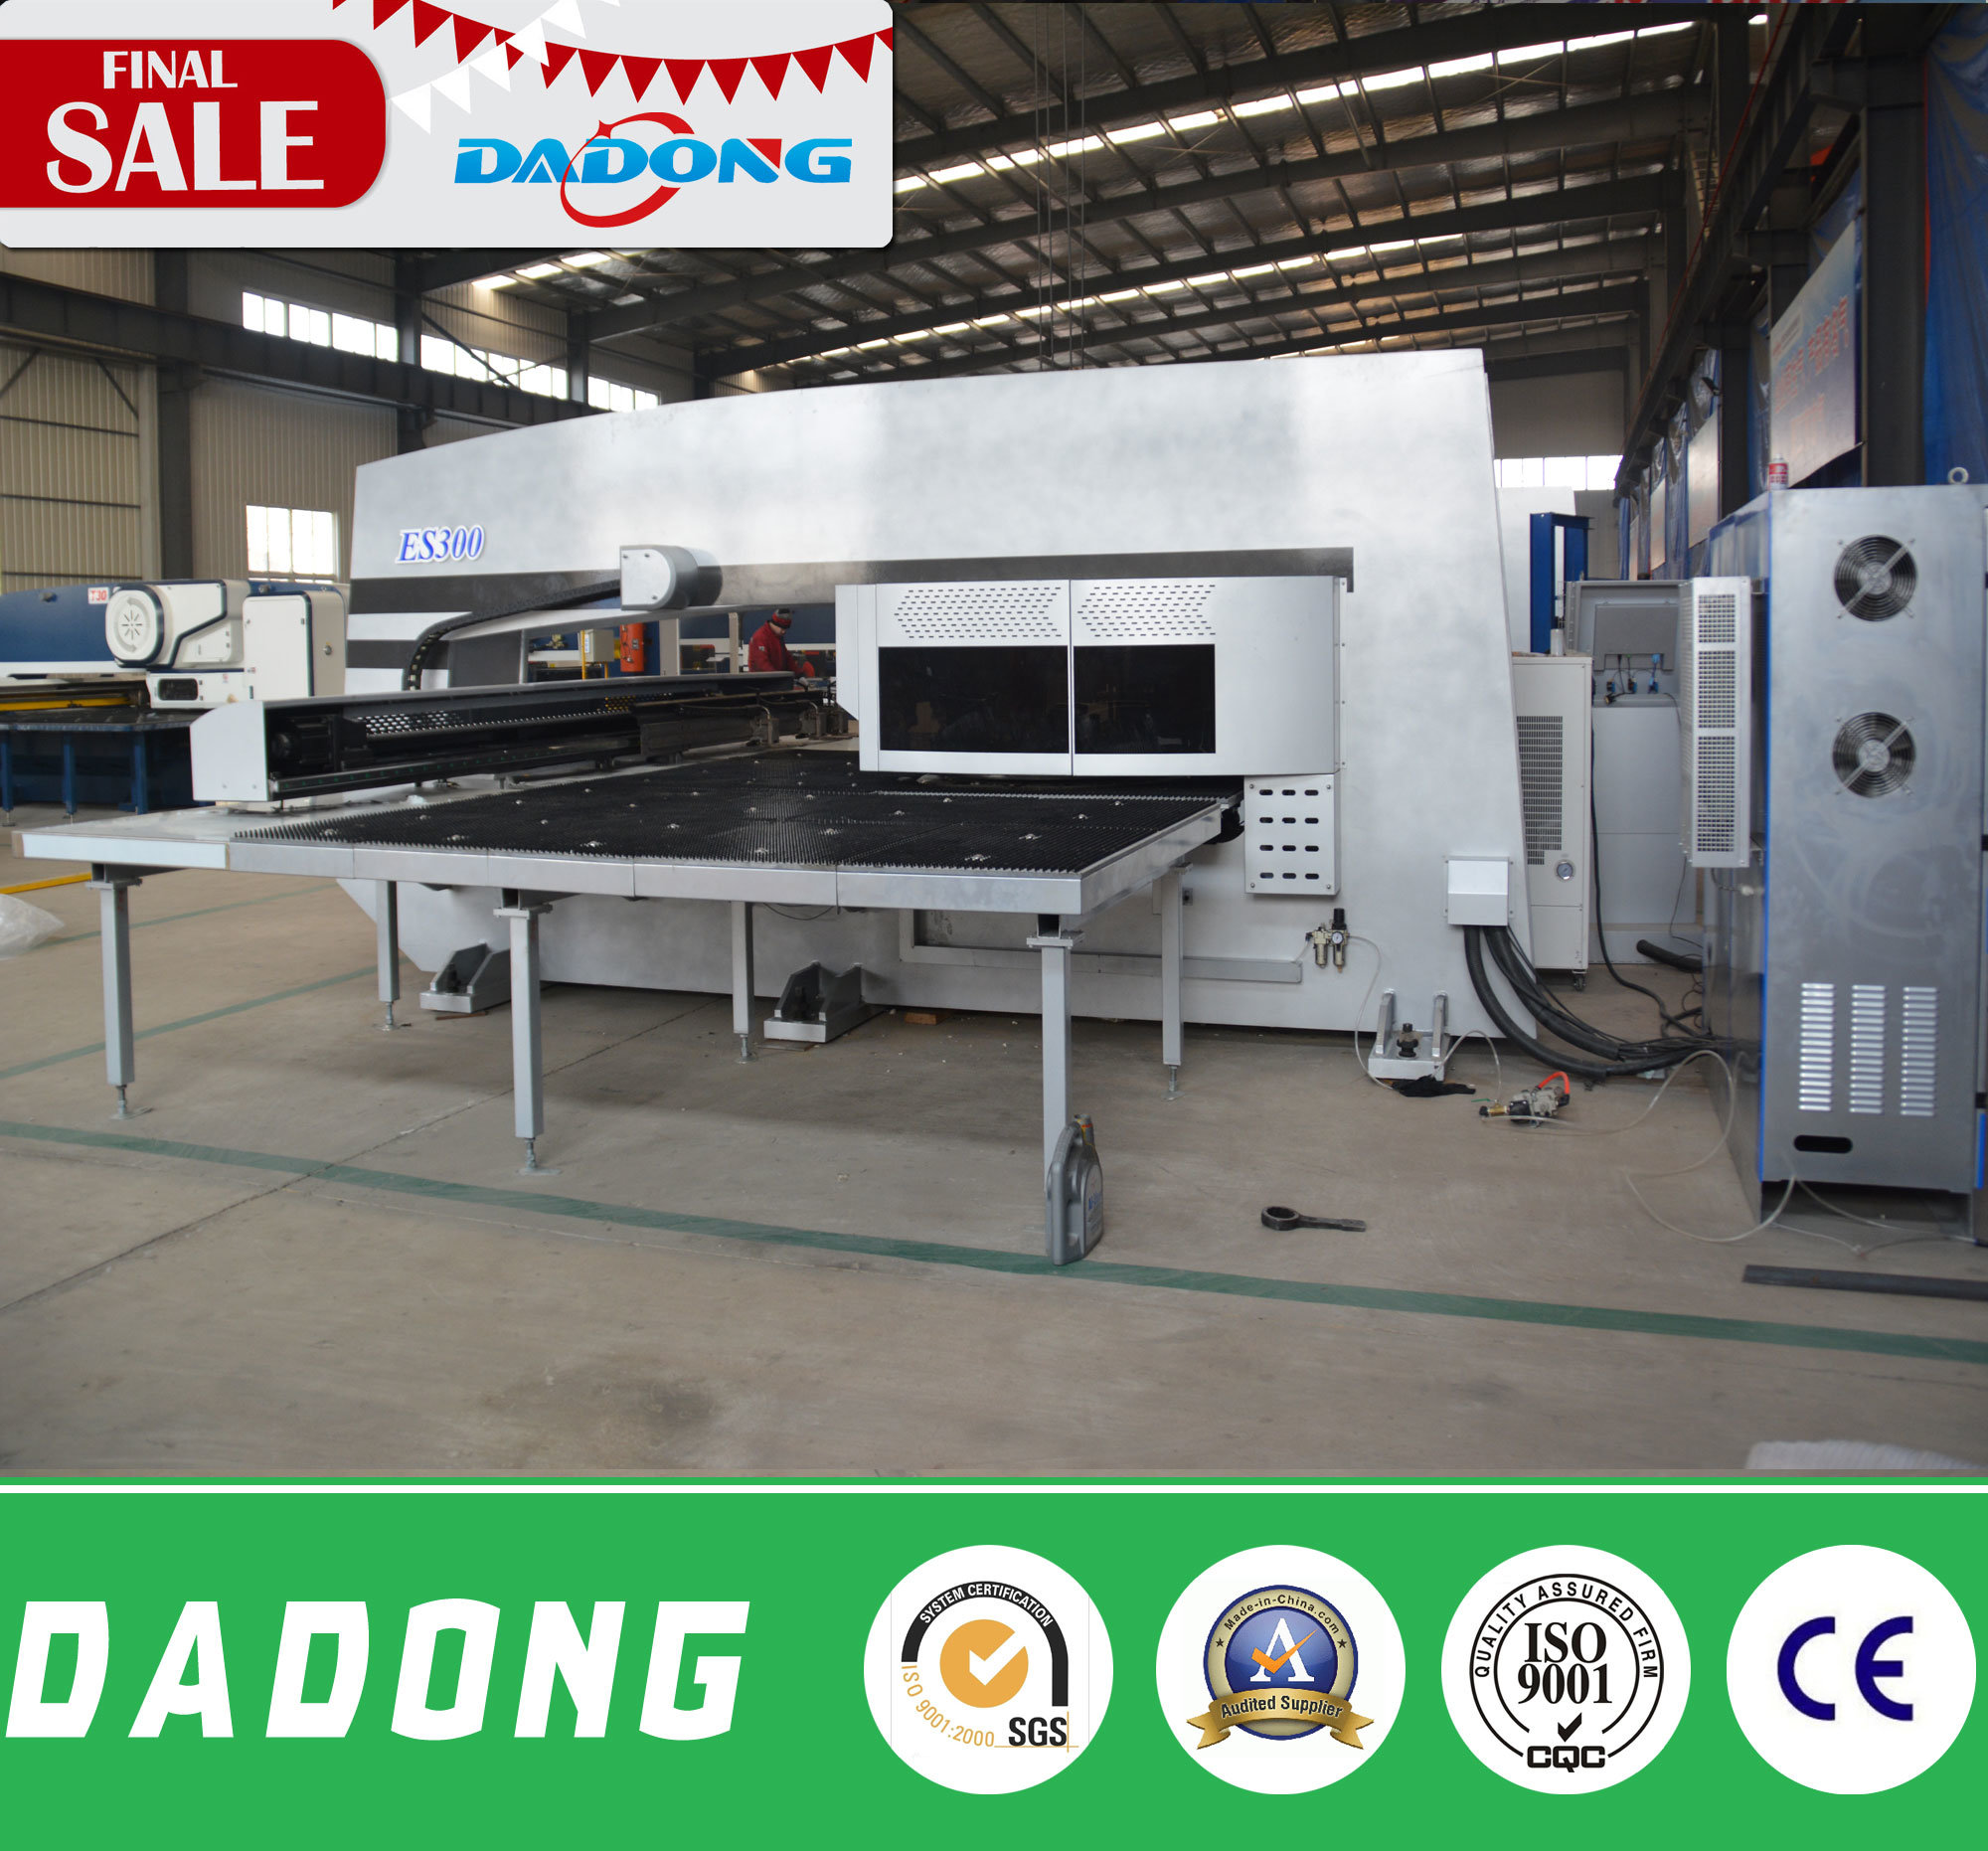 Dadong Brand CNC Servo High Speed Punching Press 12/16/20/24/32 Stations